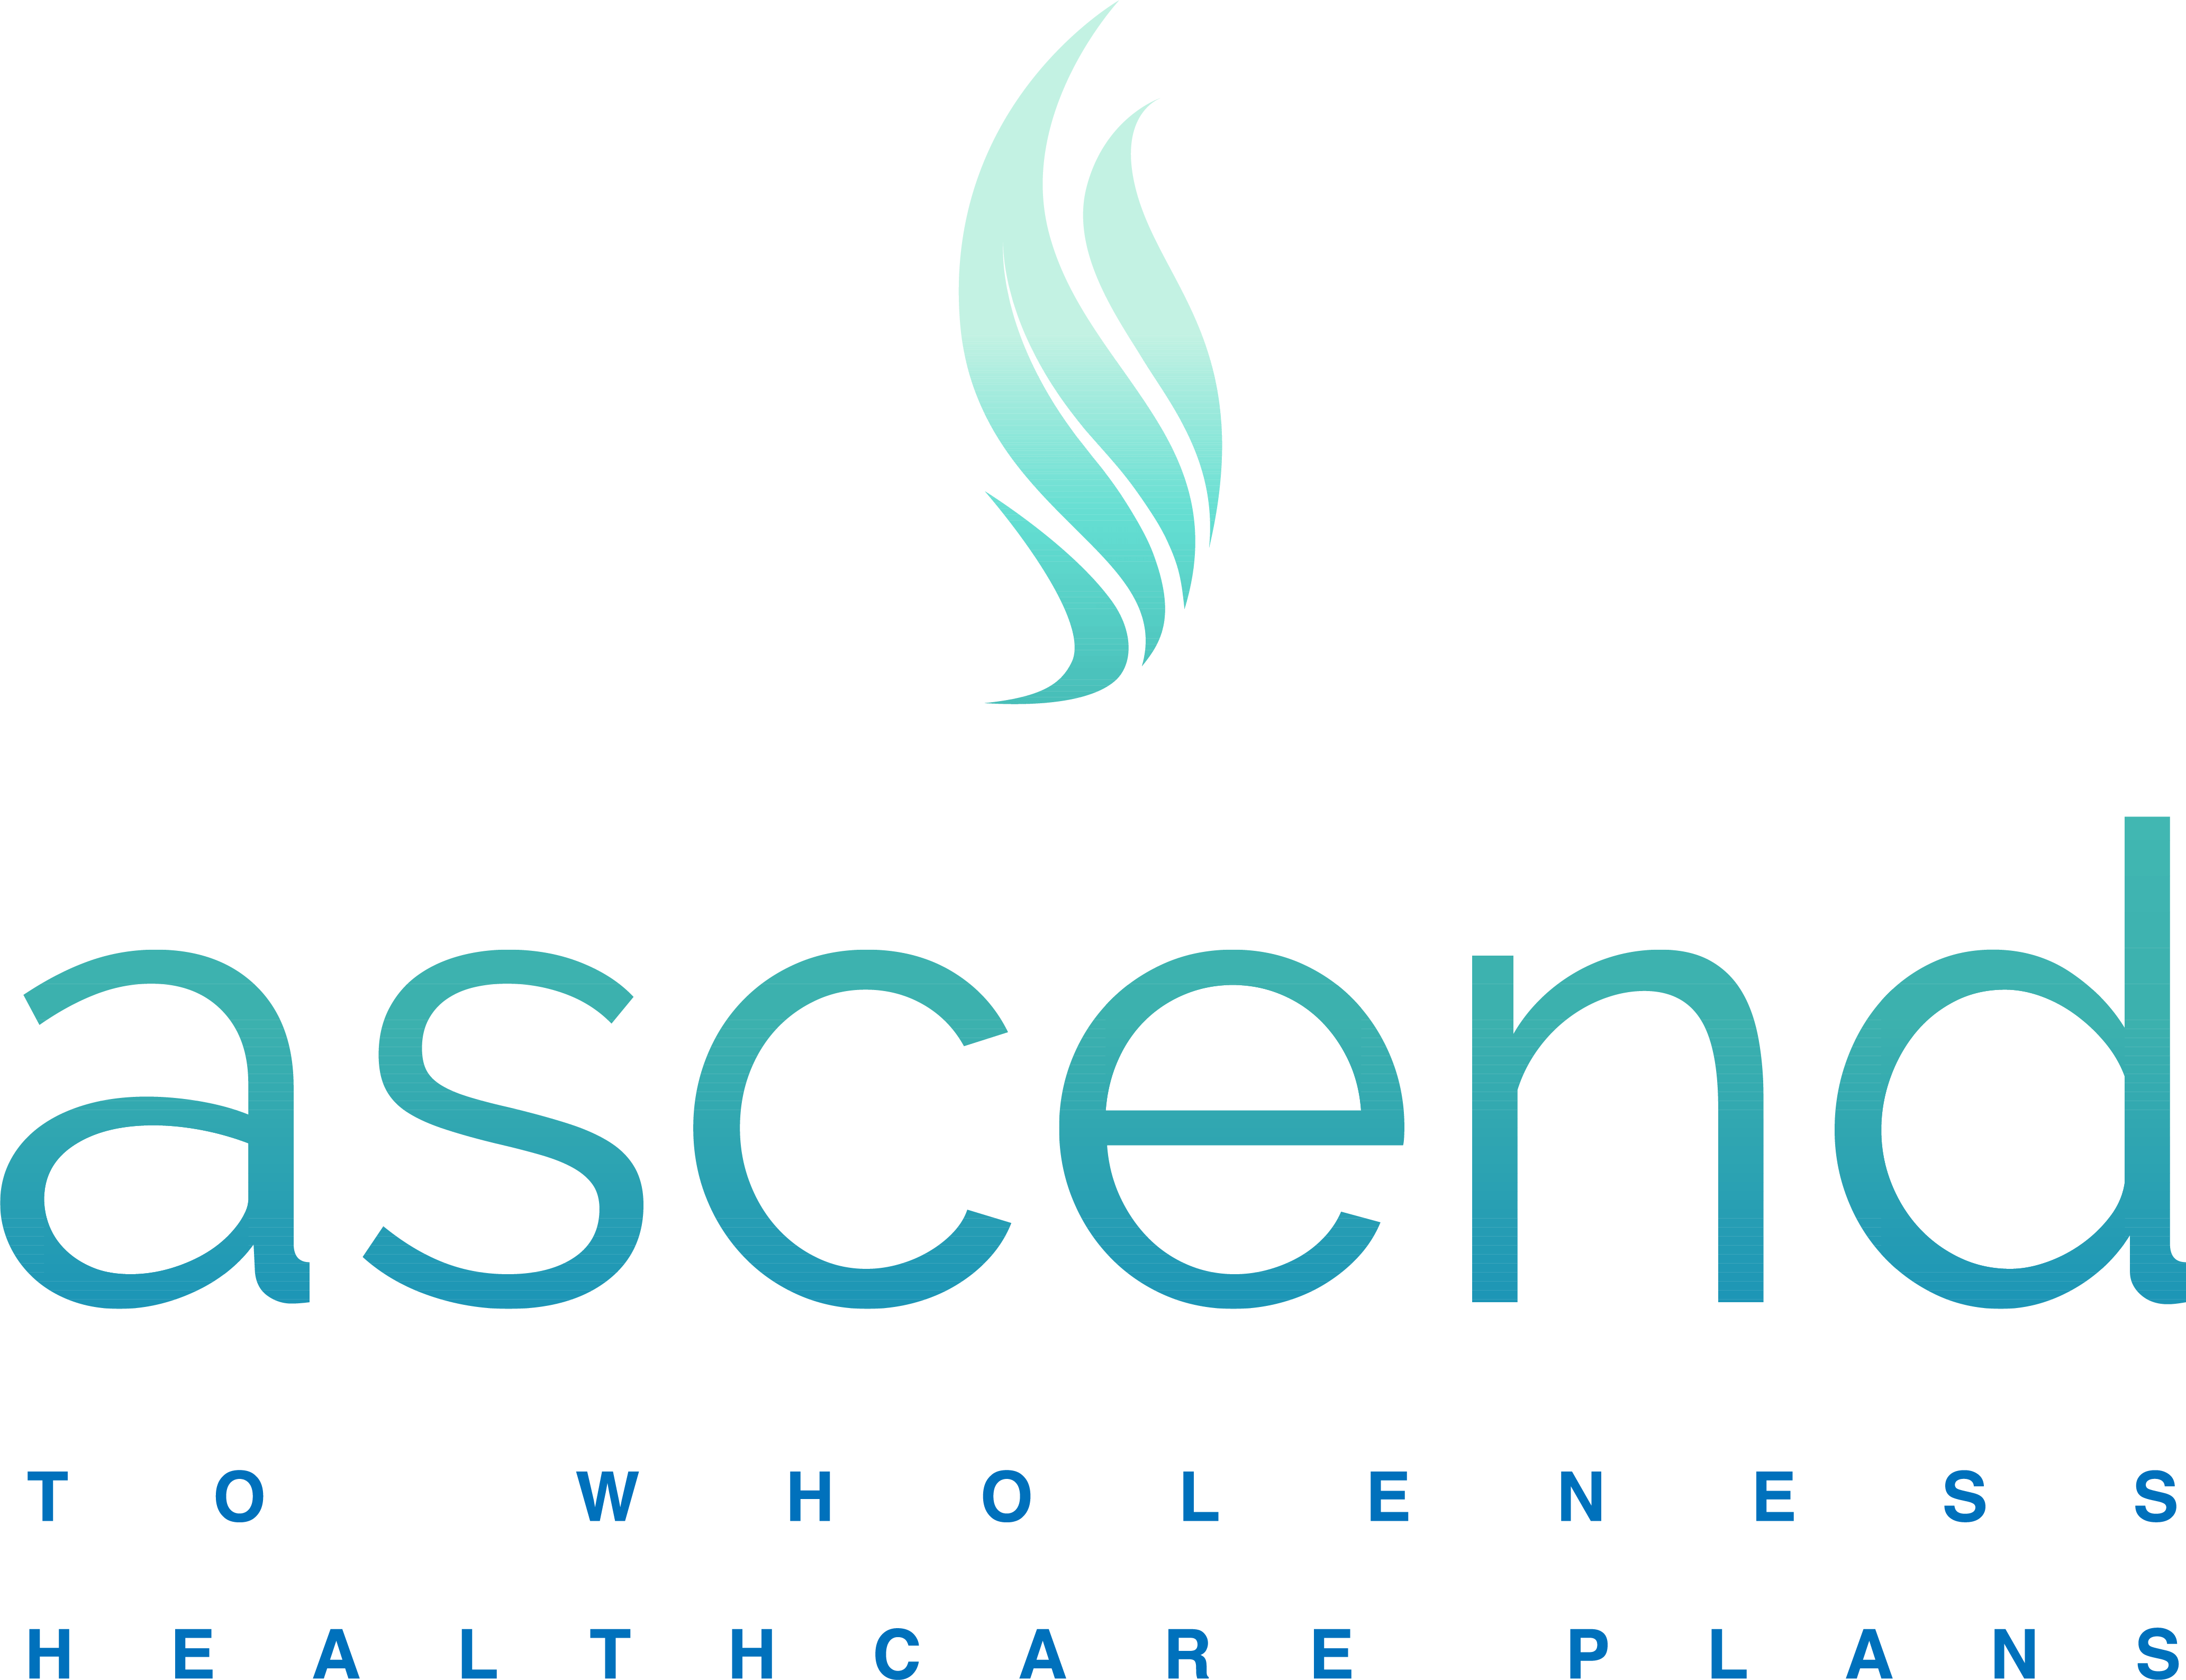 ascend to wholeness healthcare plans